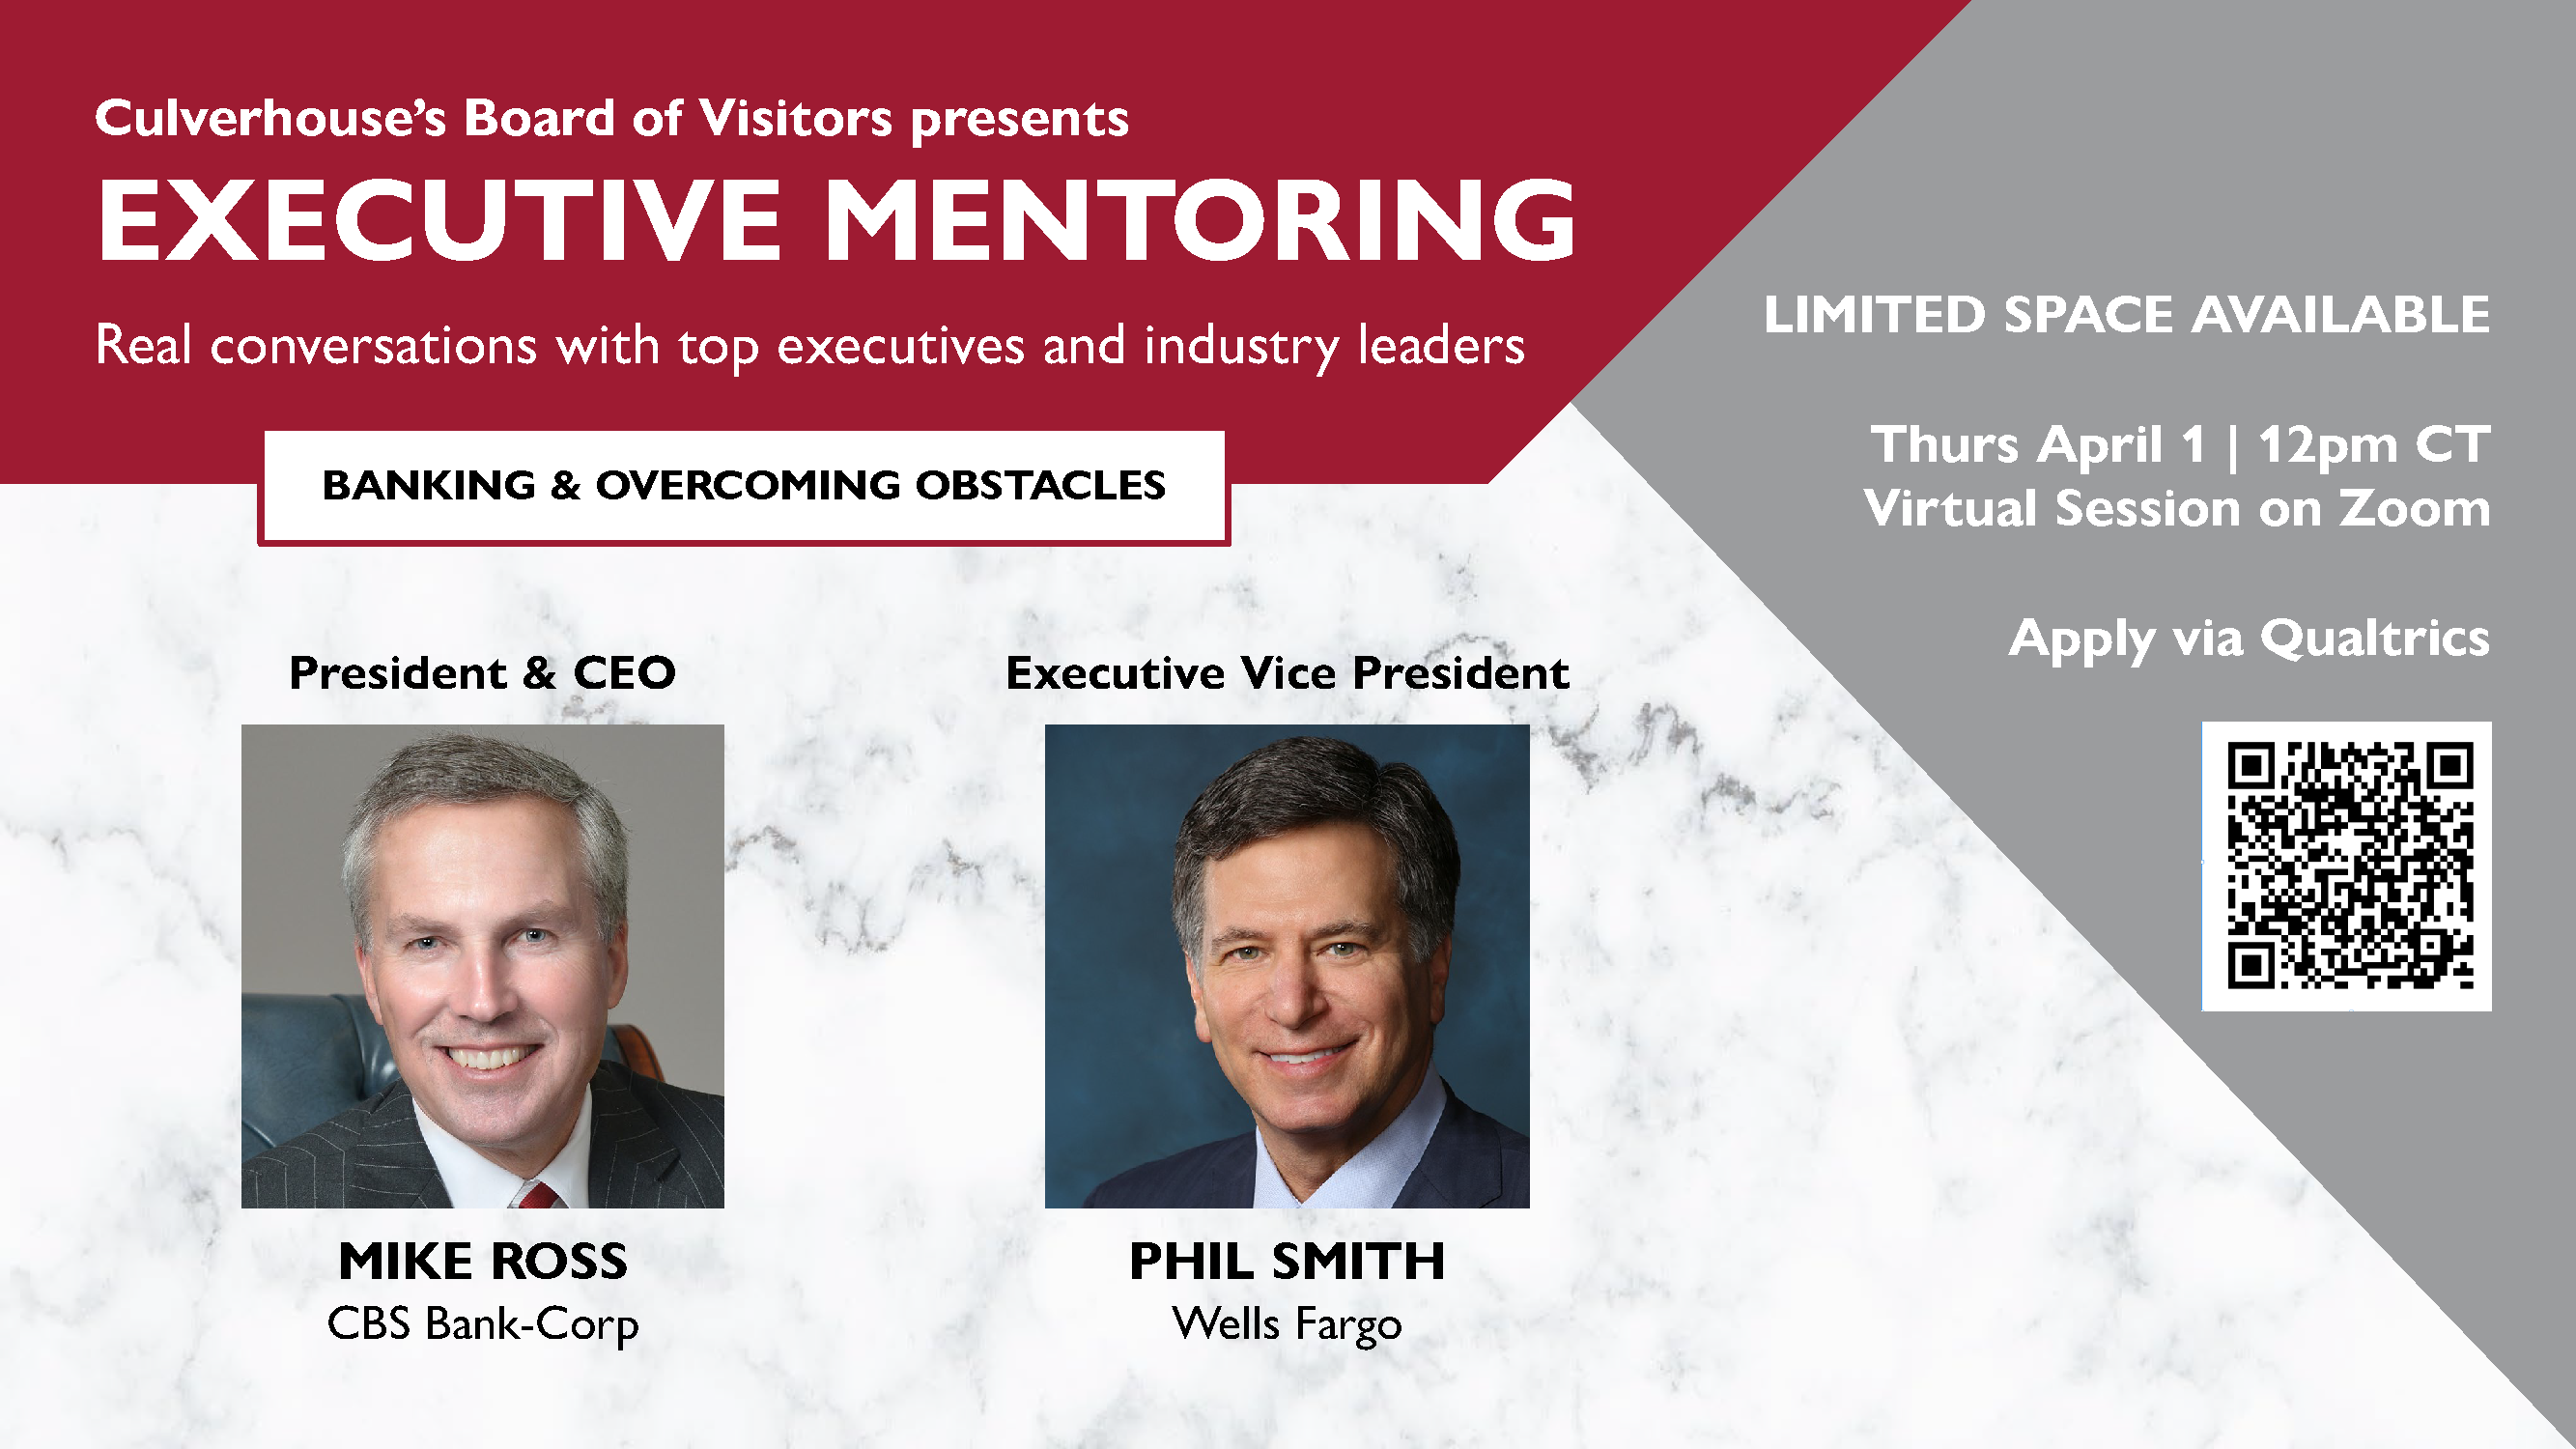 Executive Mentoring from the Culverhouse Board of Visitors members Mike Ross and Phil Smith